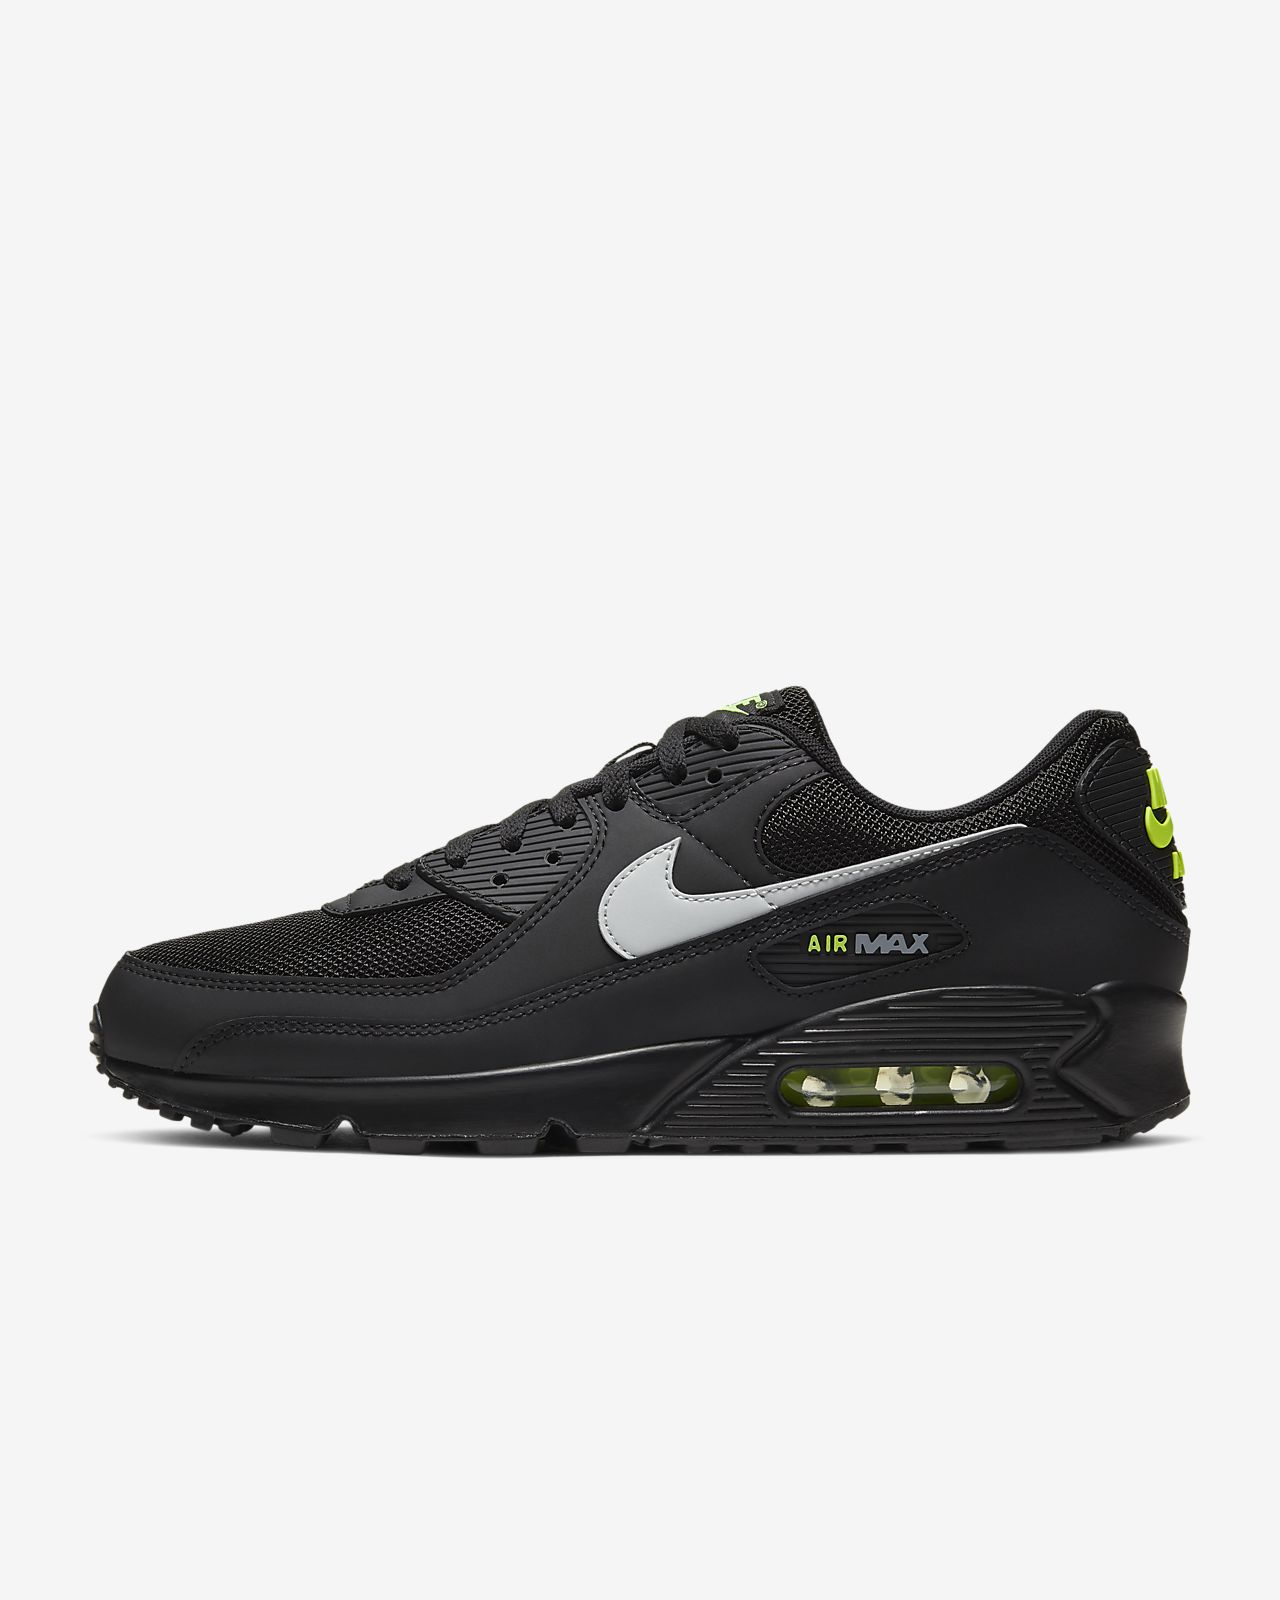 Buty Damskie Nike Air Max 90 Black White, NIKE AIR MAX 90